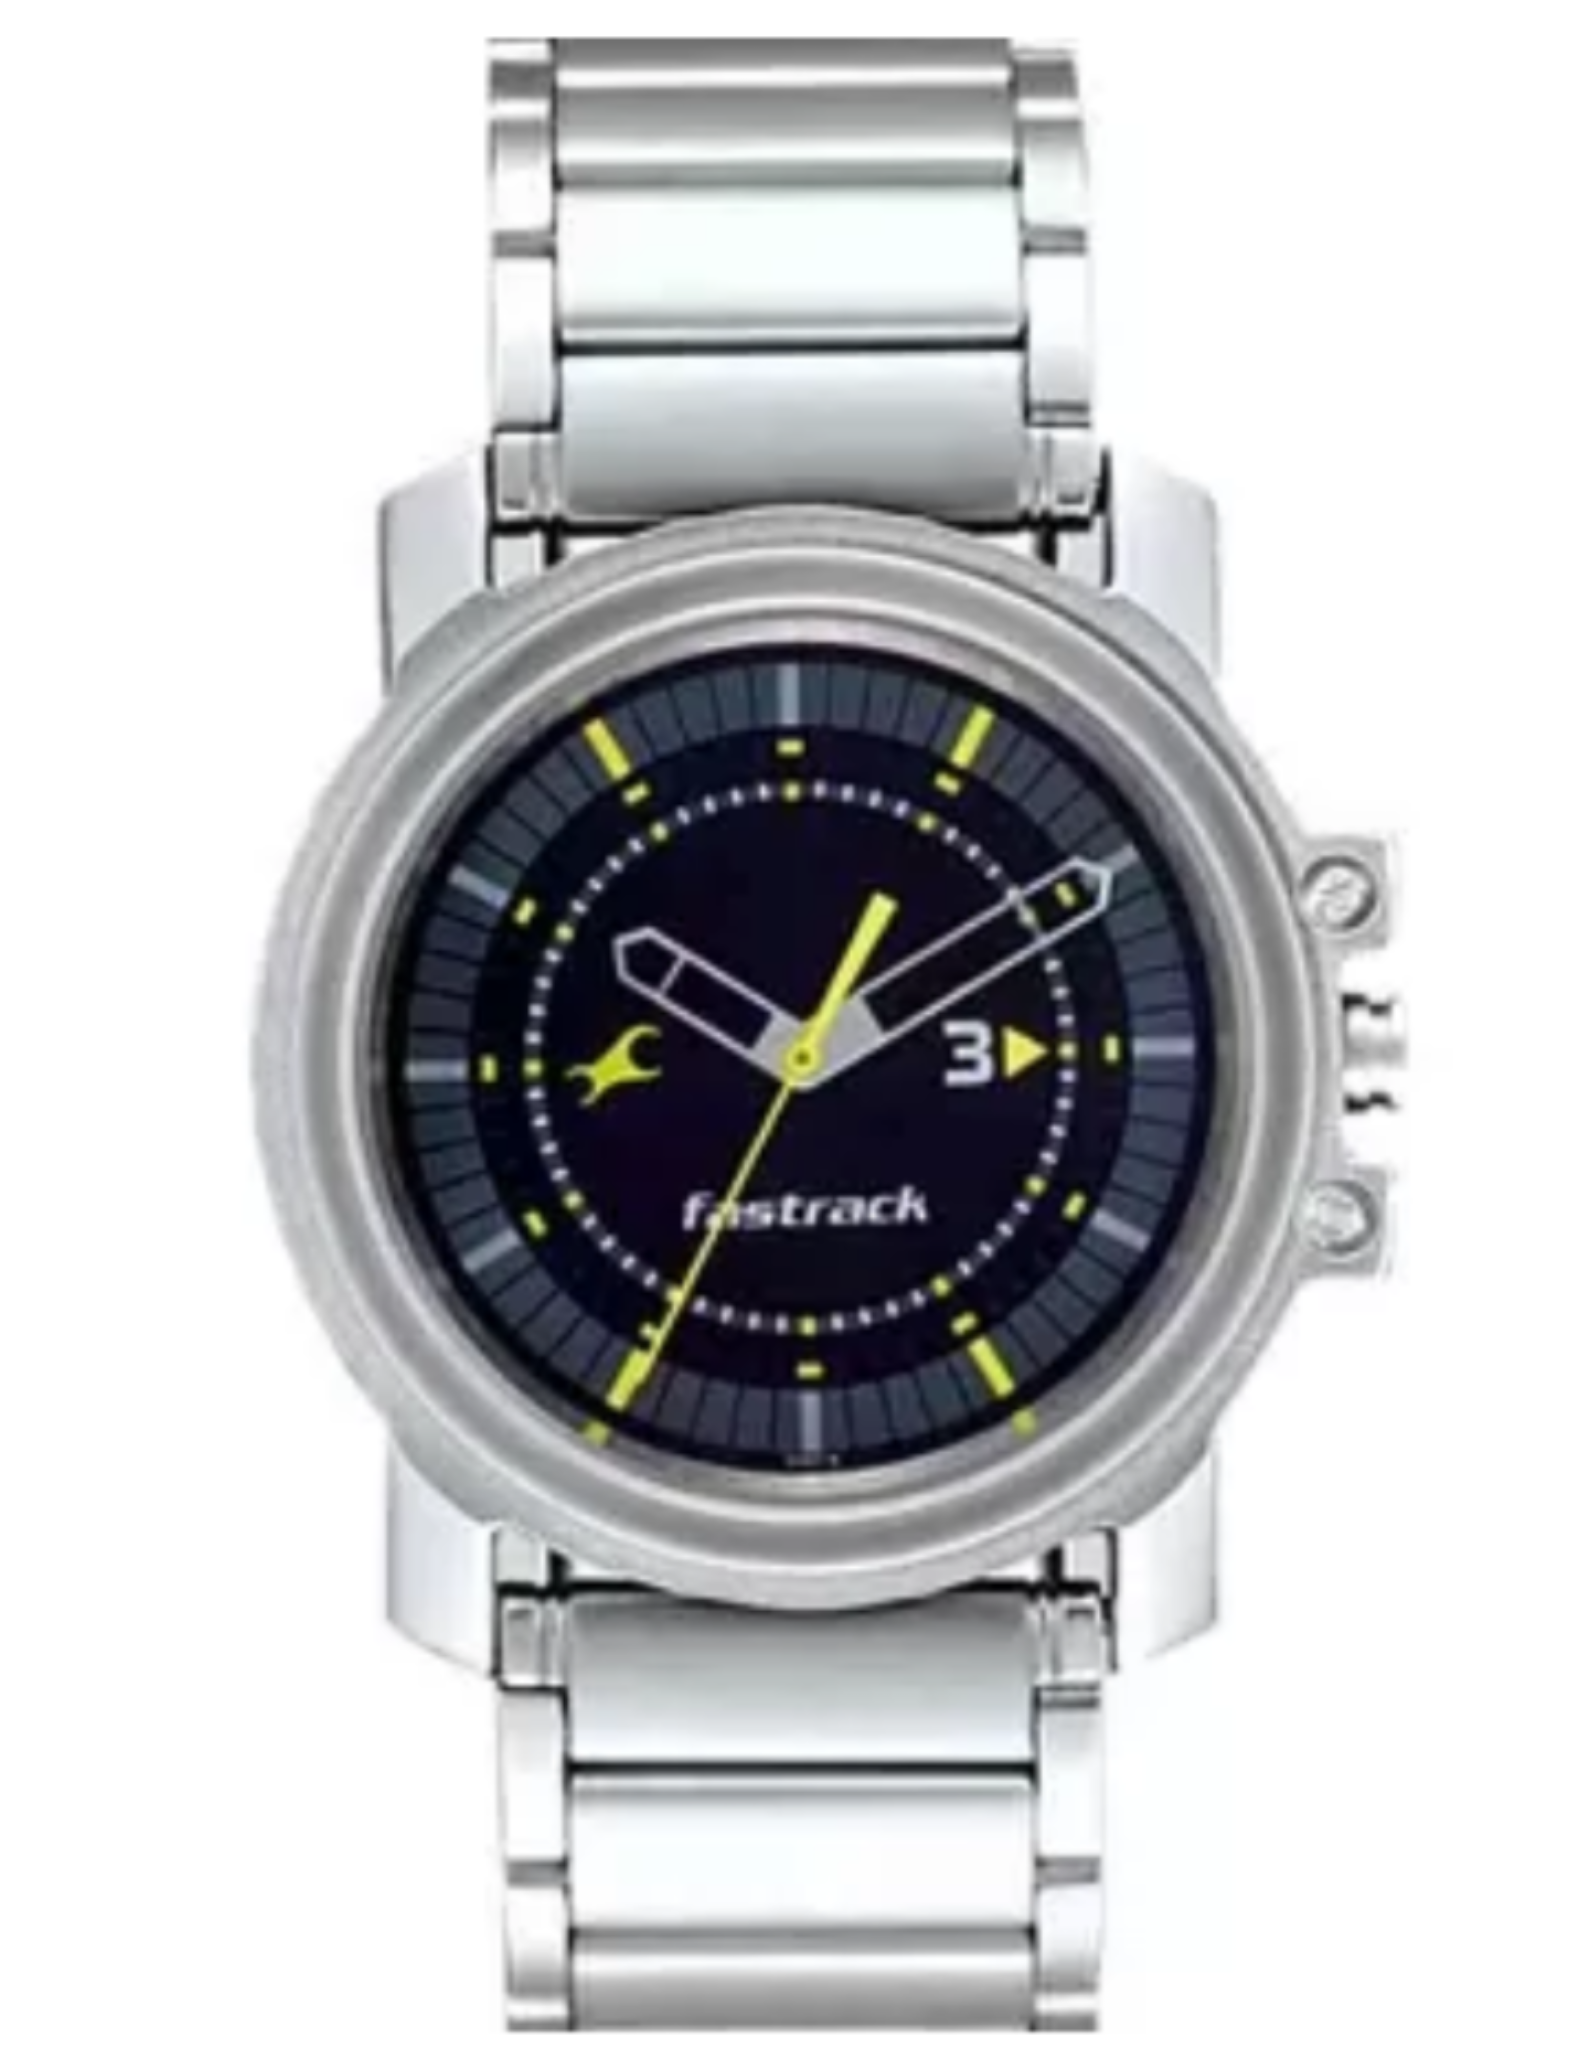 Snapdeal fastrack watches at 50% off